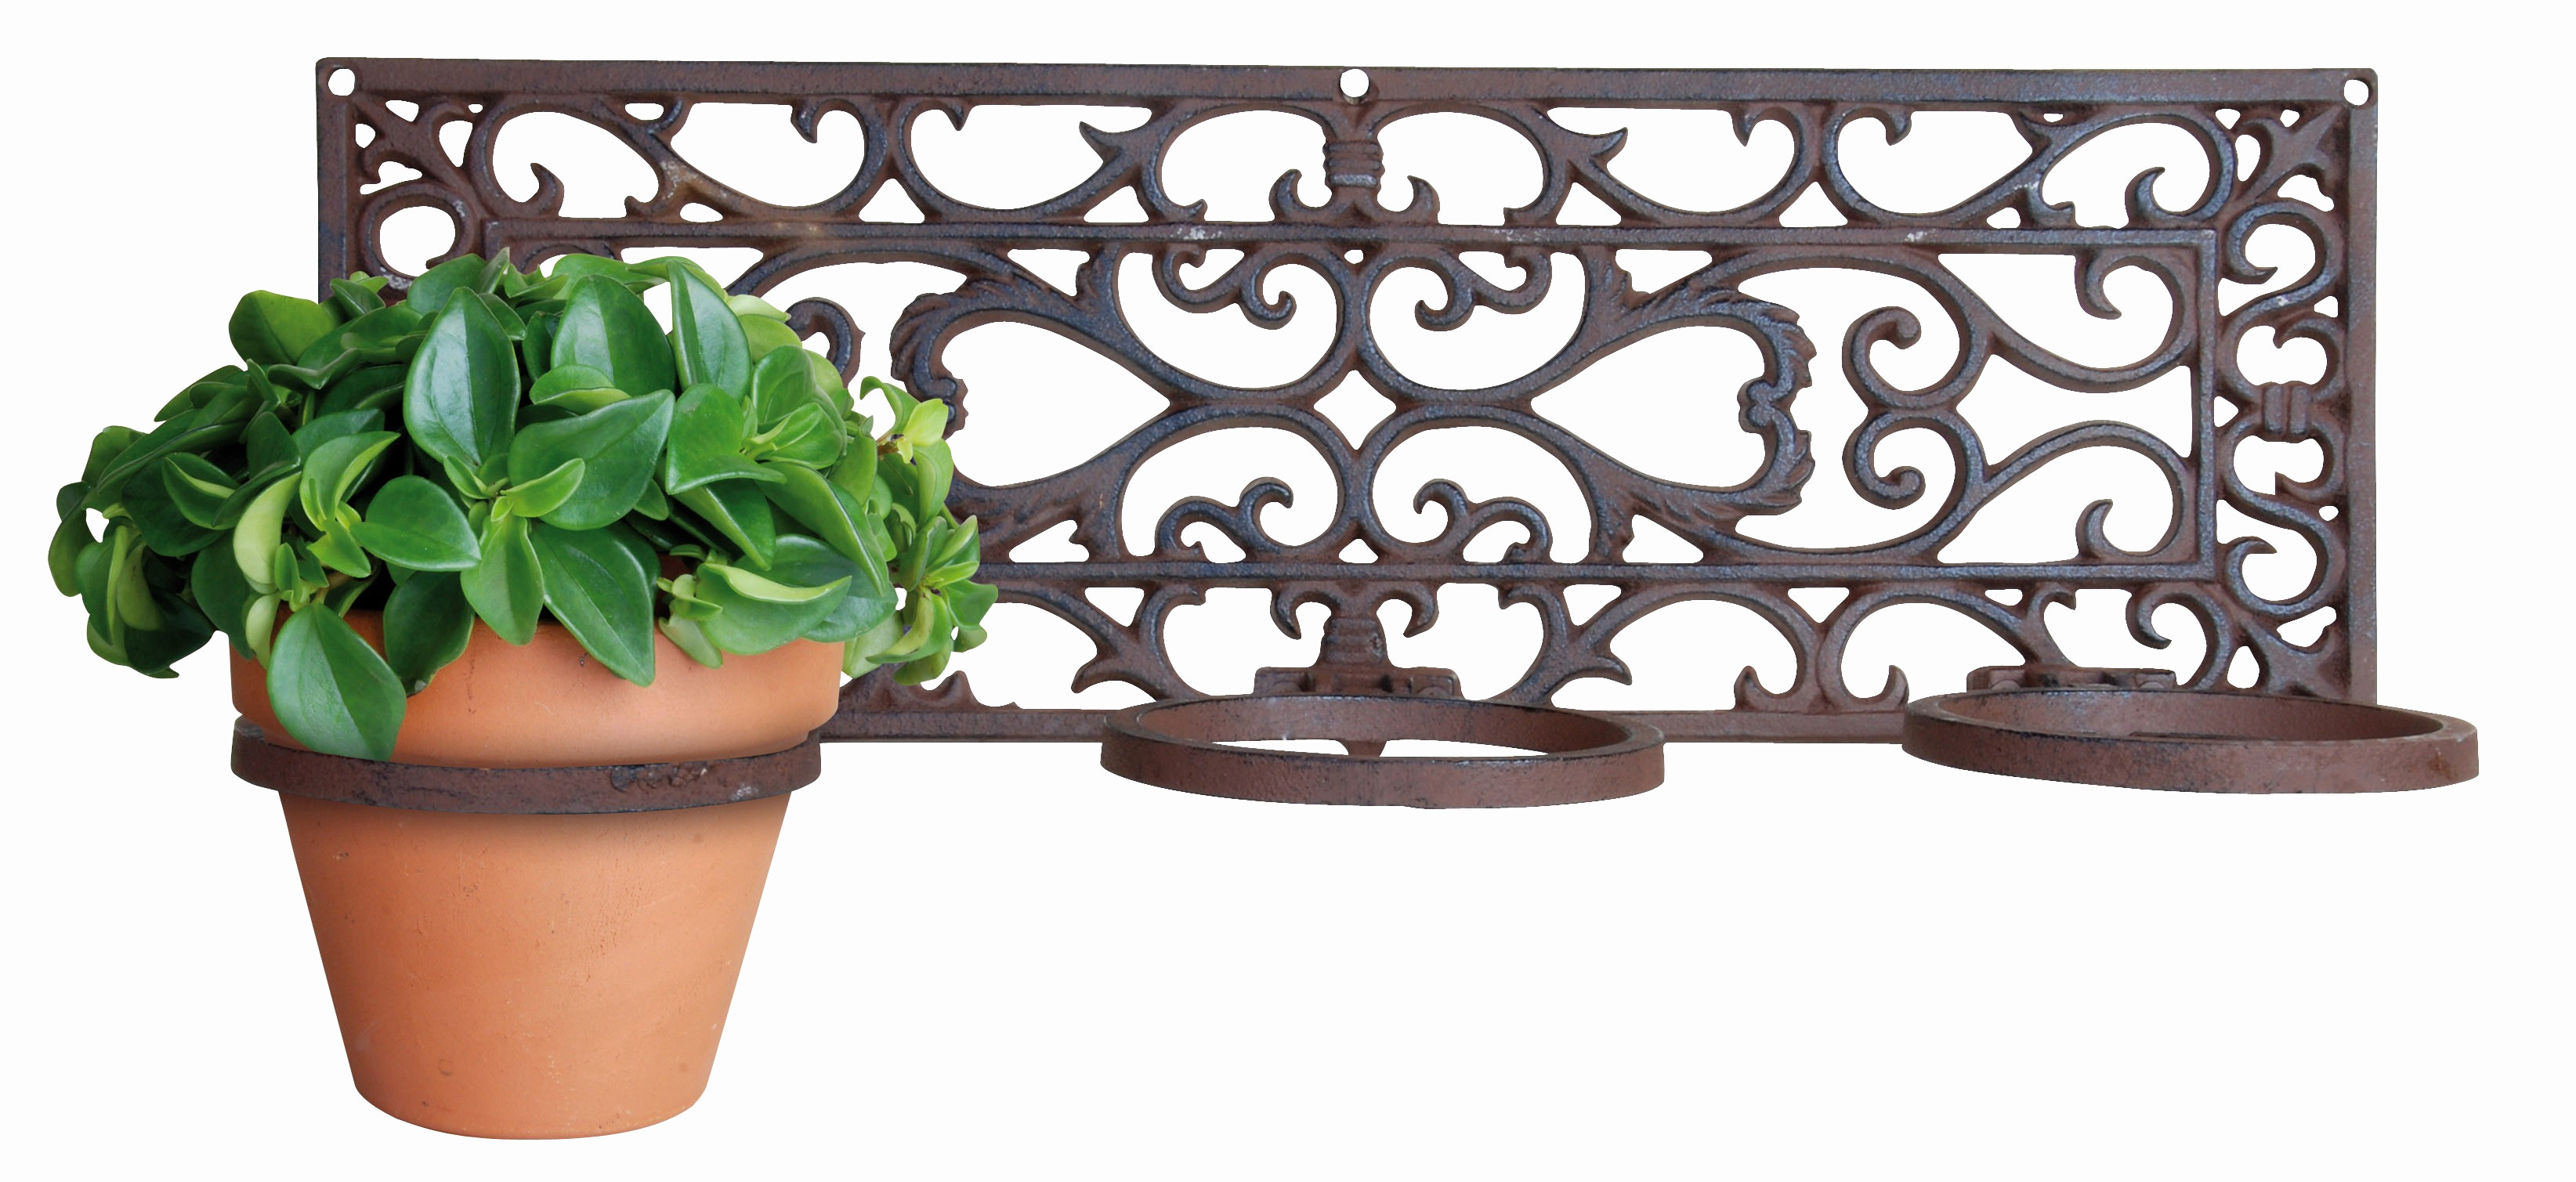 wall flower vase holder of wall hanging flower pot design floating wall vases introh mounted with regard to 0d bronze wall hanging flower pot wall hanging plant pot holders